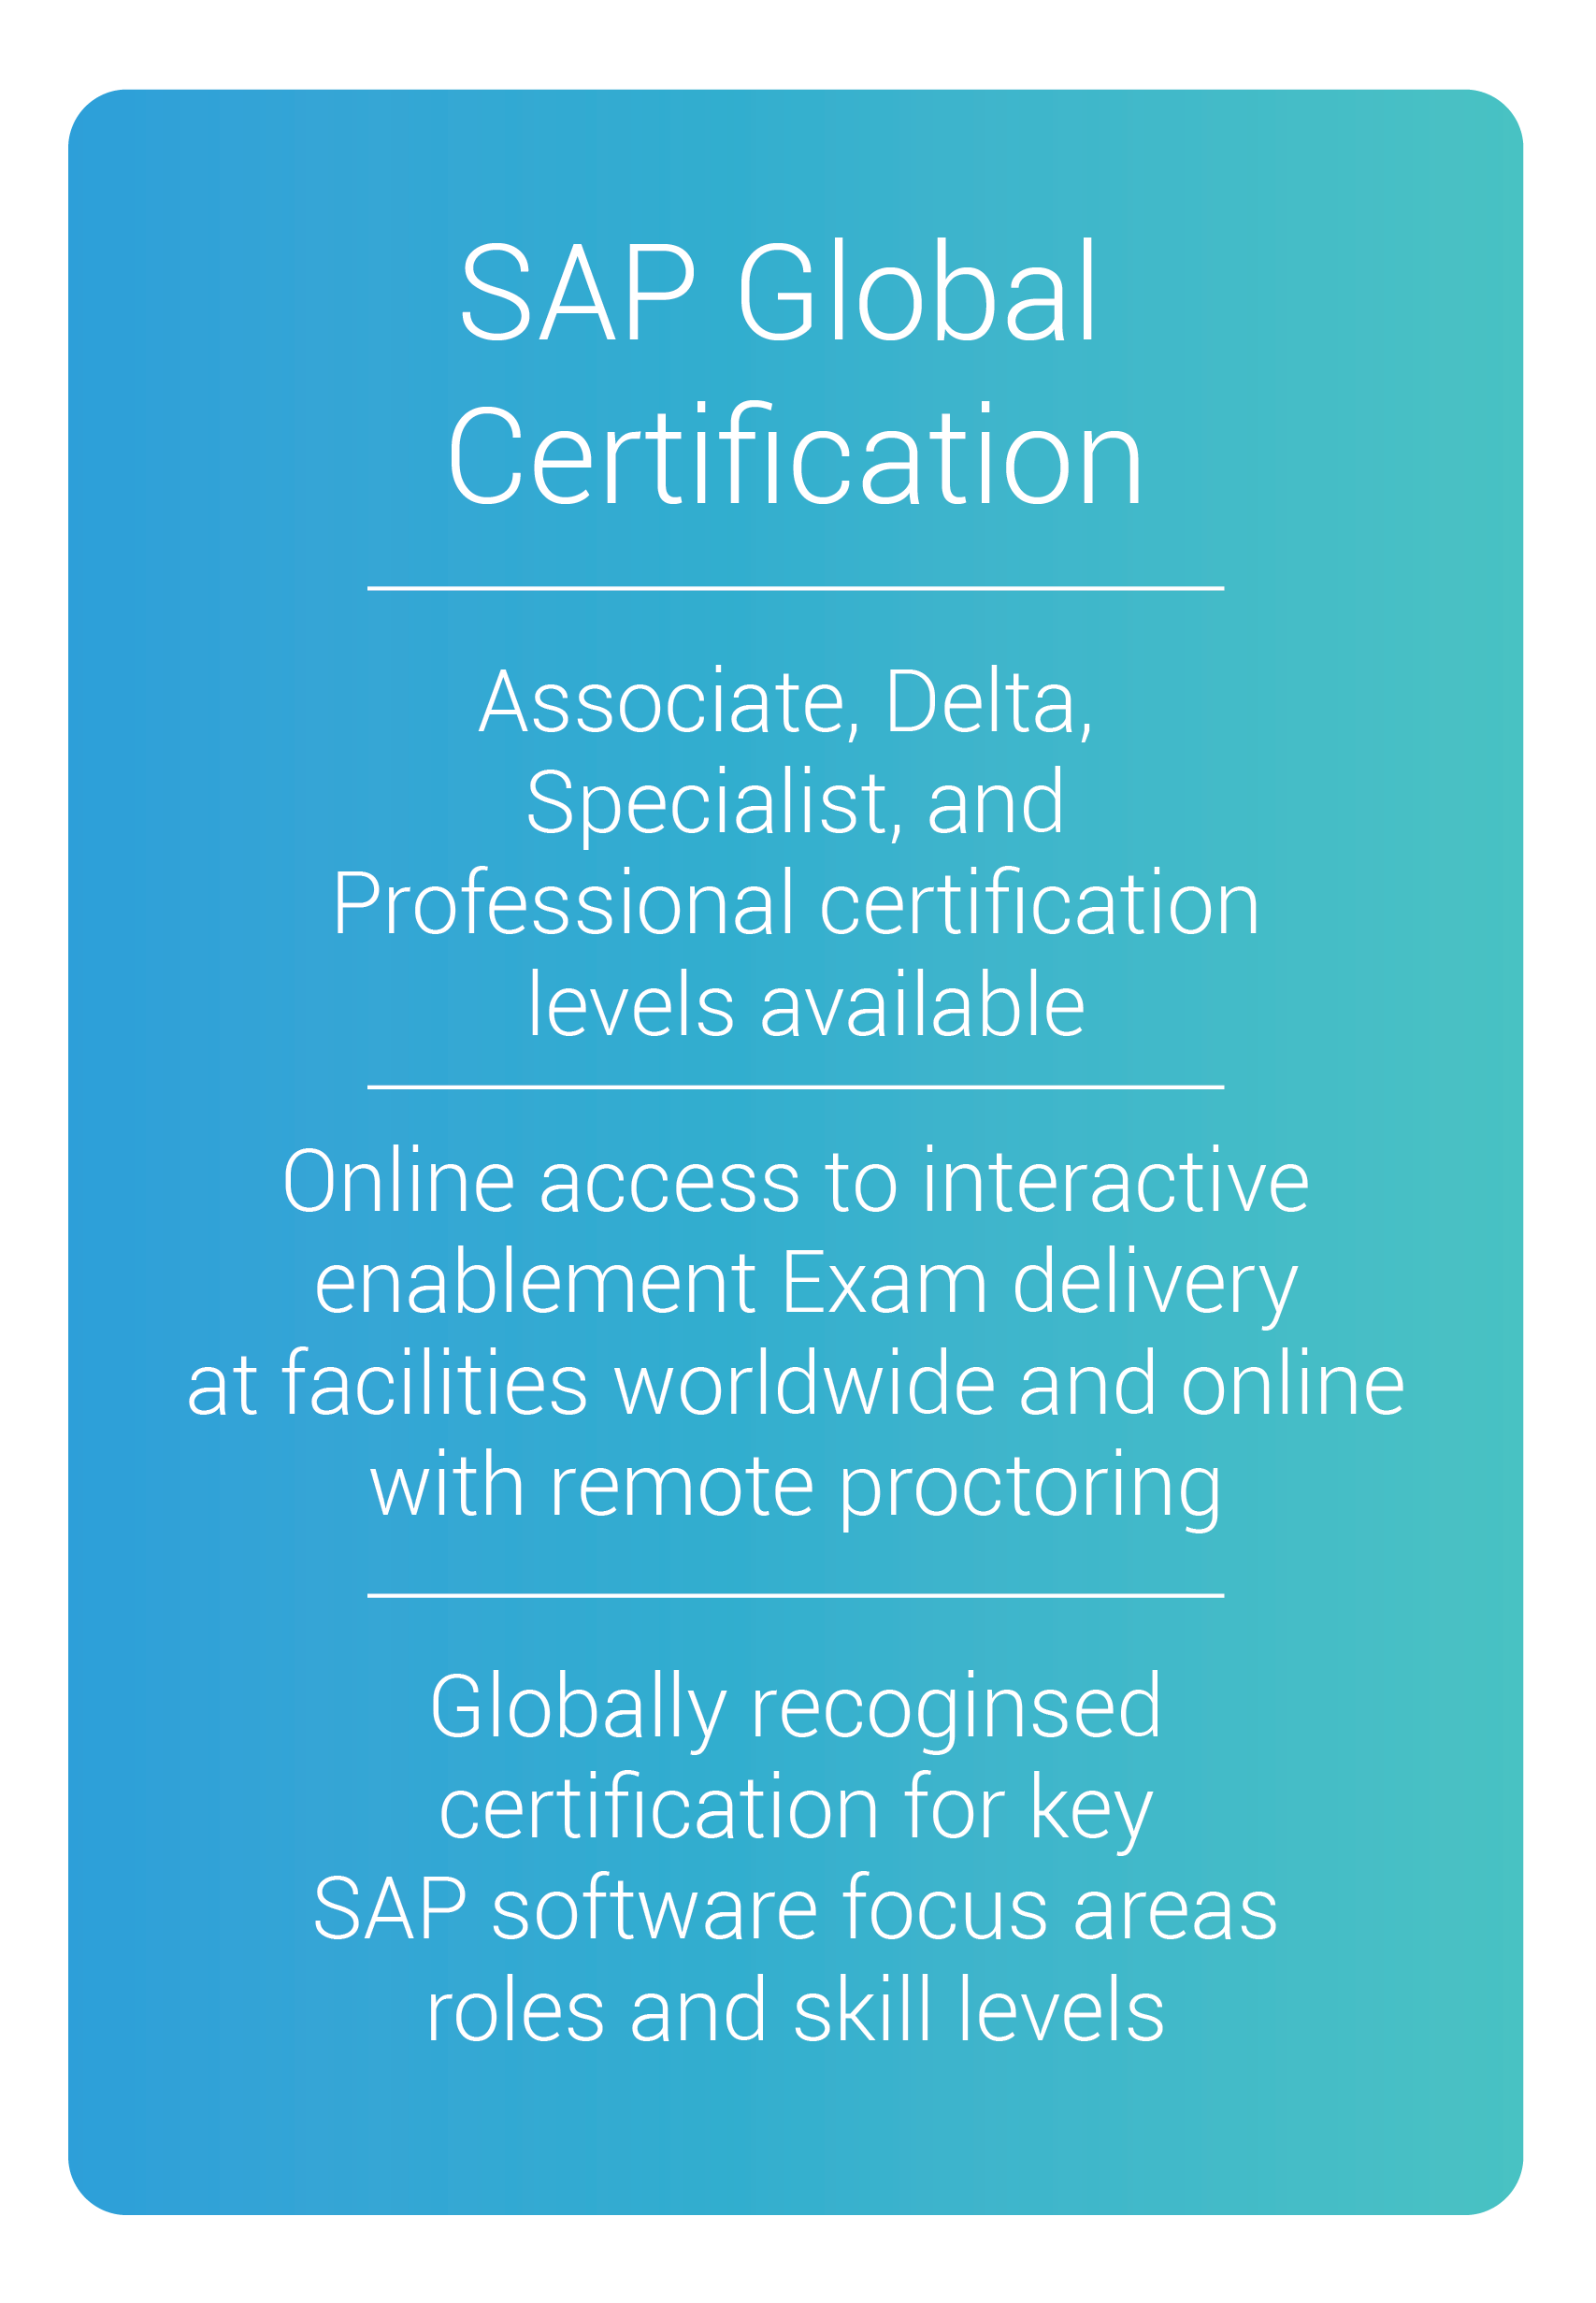 sap global certification online training